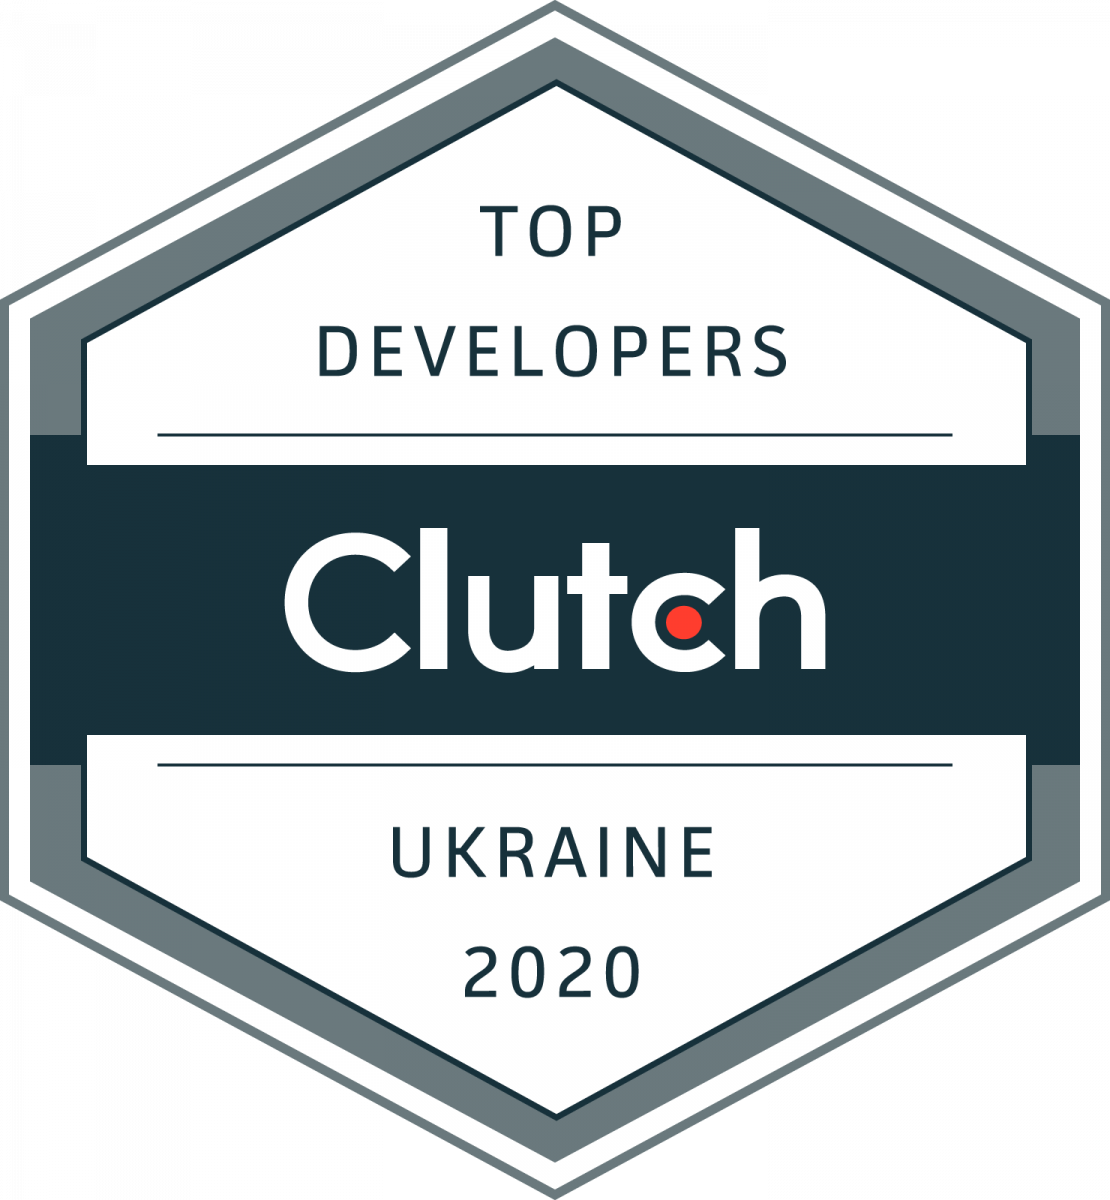 Top Emerging Tech Companies Ukraine